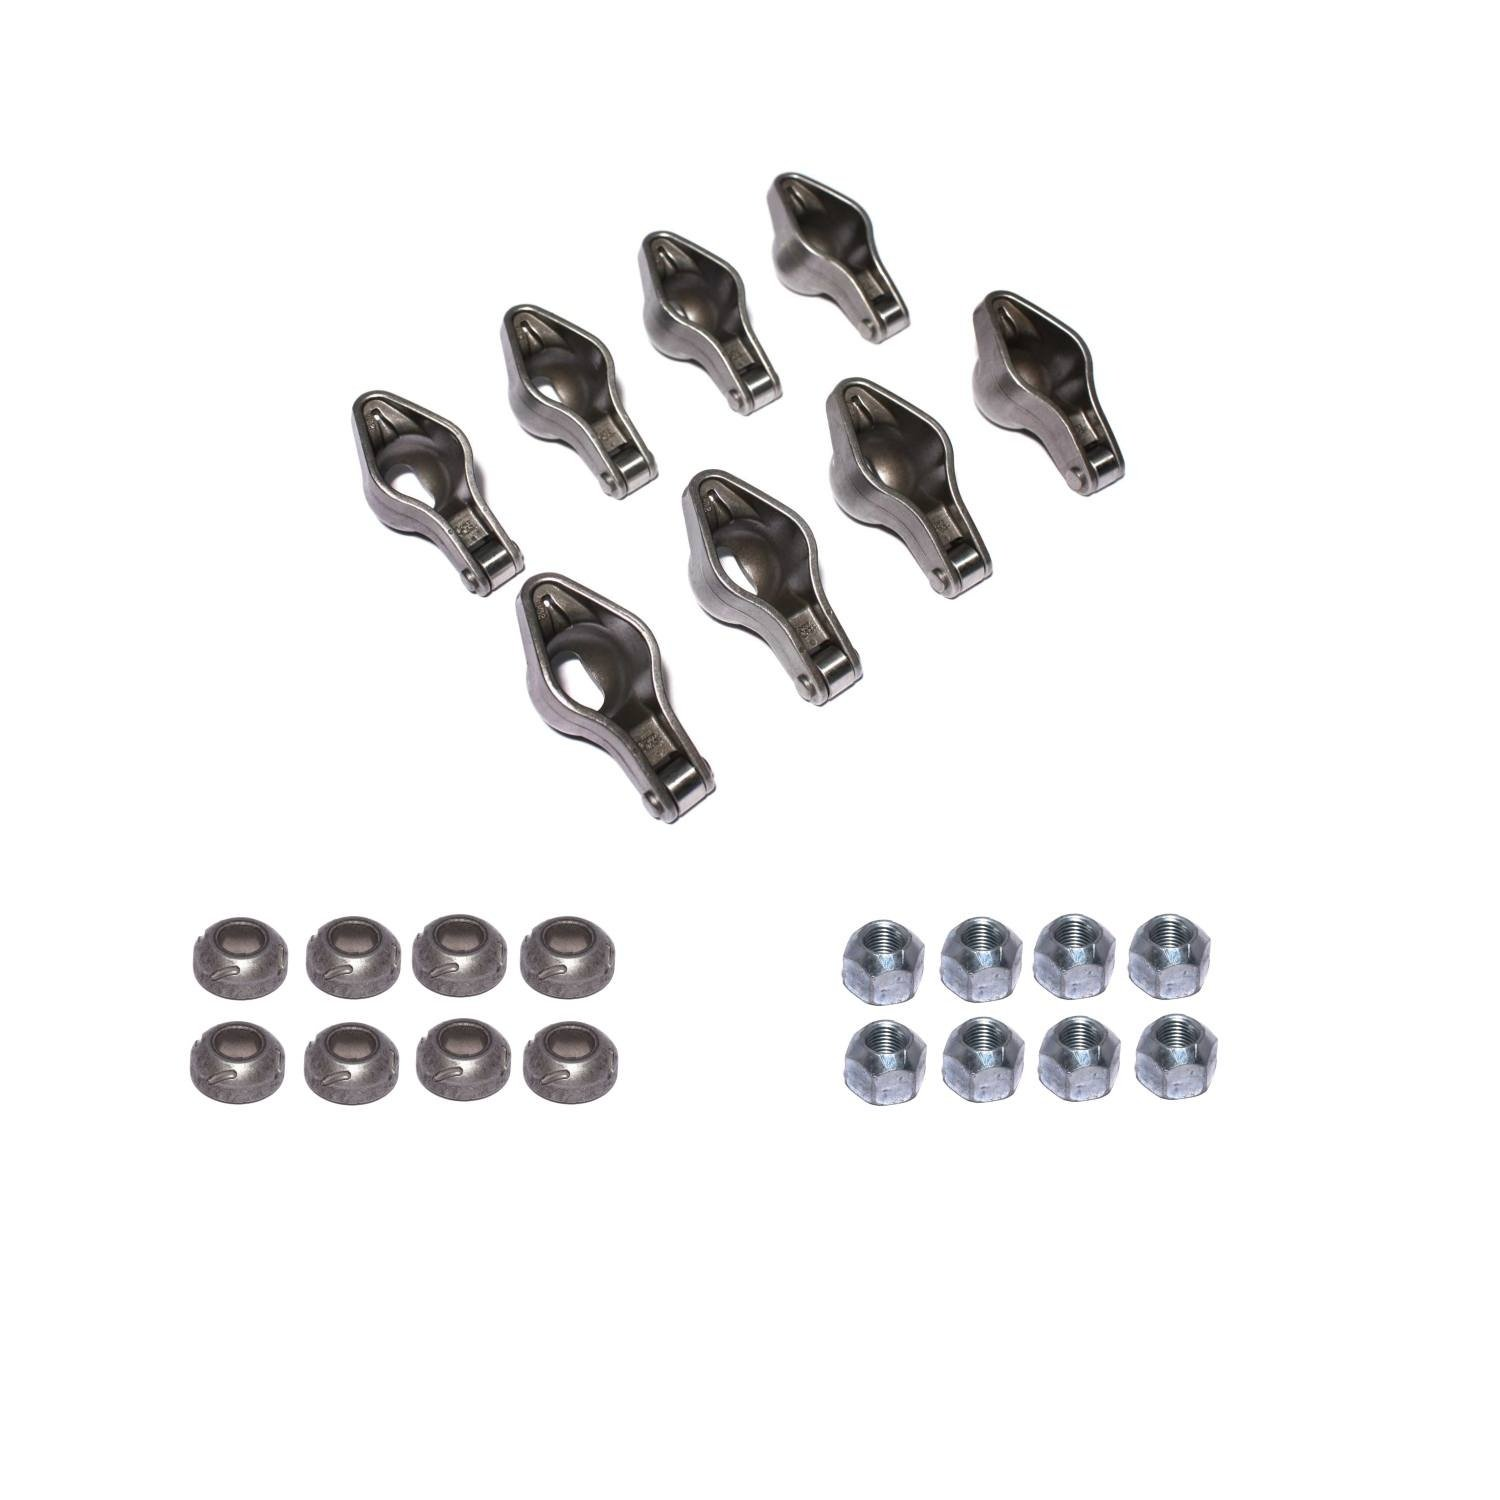 Set of 8 COMP Cams 1411-8 Magnum Roller Rocker Arm with 1.72 Ratio and 7//16 Stud Diameter for Chevy Big Block Engine,